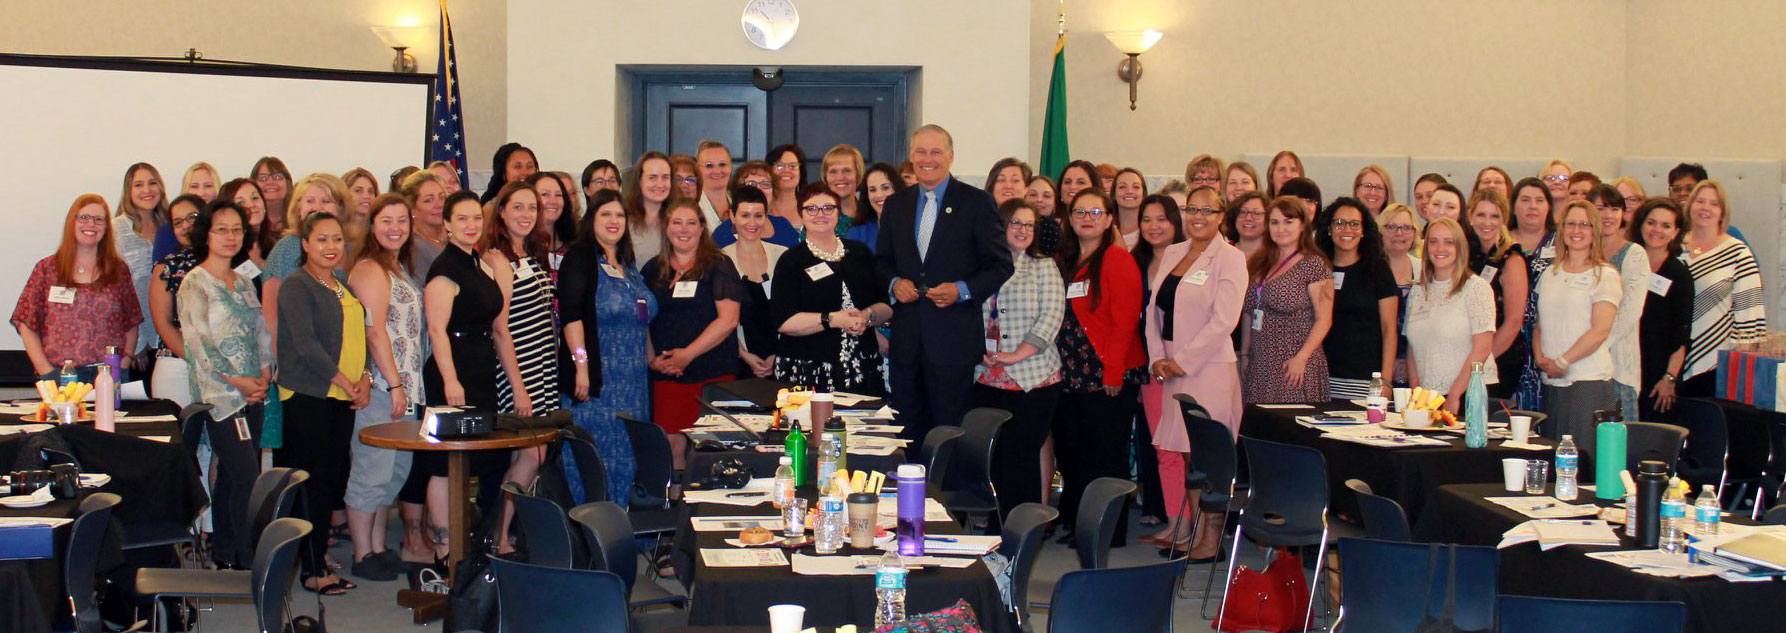 Governor Jay Inslee (center) poses with ICSEW representatives at the 2018 Transition Celebration in Olympia.